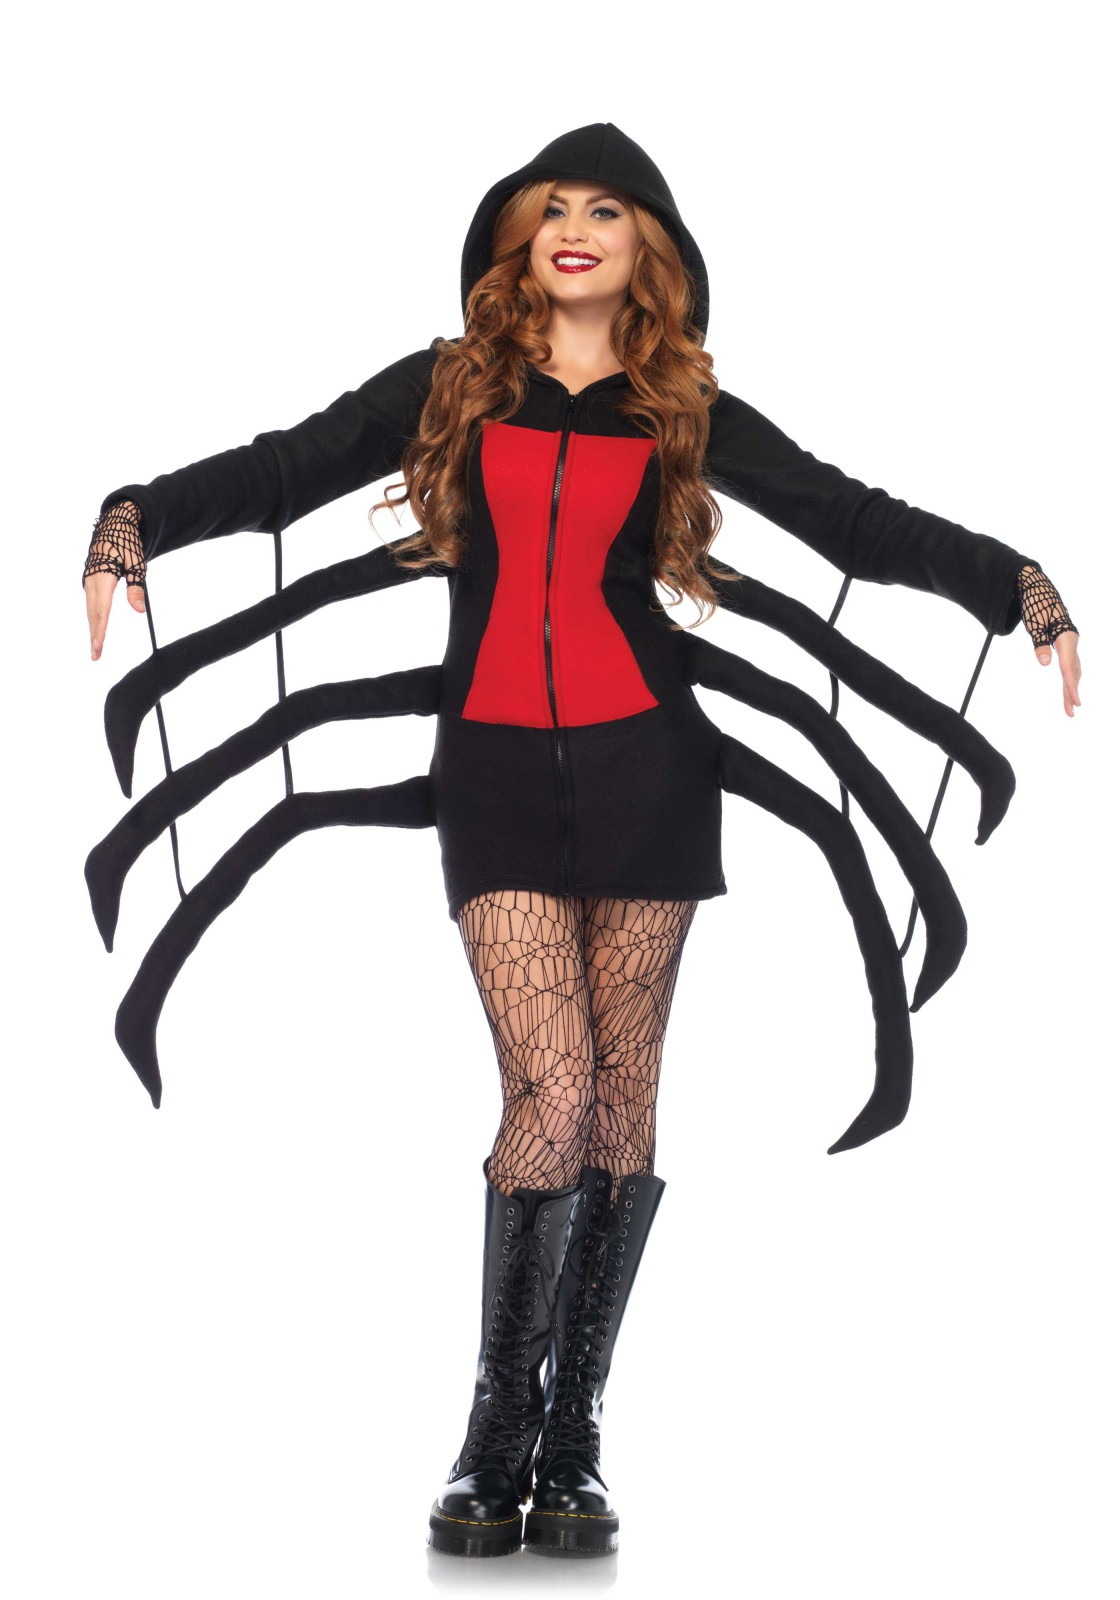 Cozy Spider, features zipper front hooded fleece dress with red danger diamond detail and wiggly spider legs. The length of size Small, measured from the shoulder is 73cm / 28inch. The model has a length of 178 cm/ 70 inch and is wearing a size S.